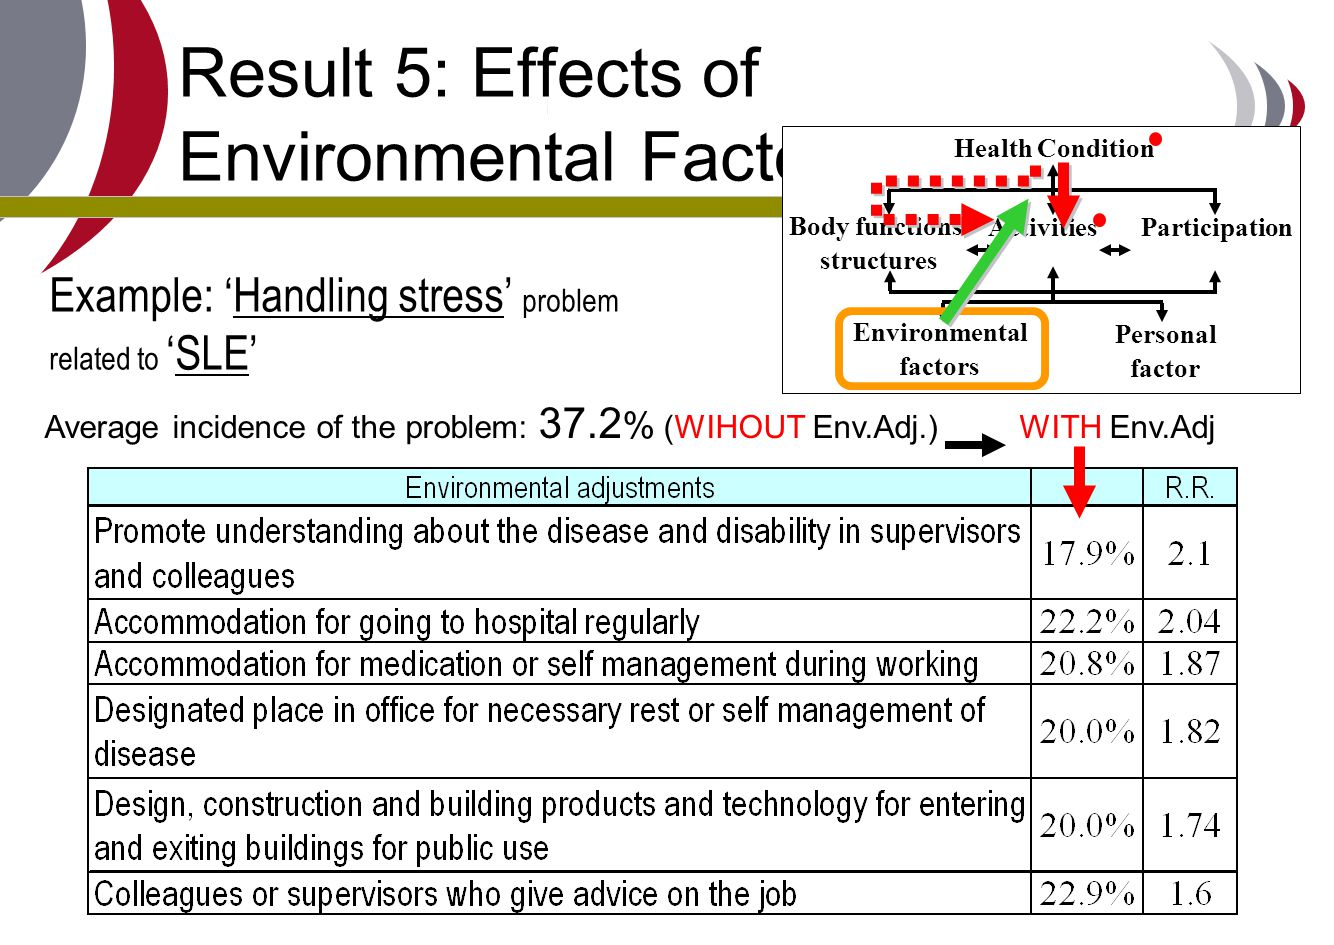 Result 5: Effects of Environmental Factors (2) Average incidence of the problem: 37.2 % (WIHOUT Env.Adj.) WITH Env.Adj Health Condition Body functions